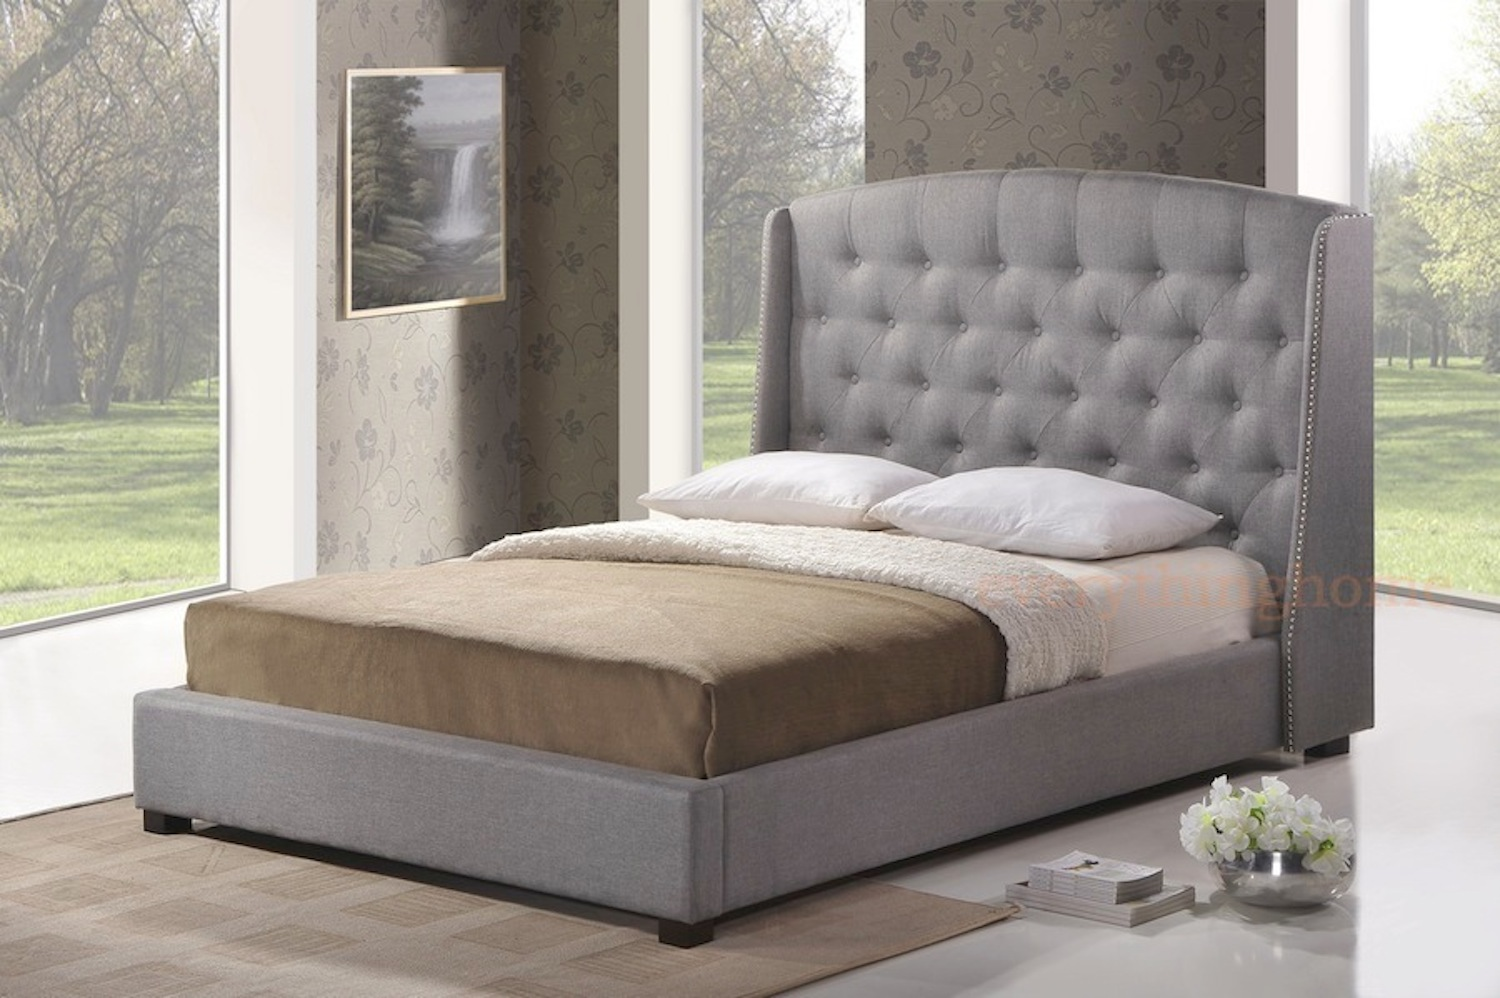 gray grey linen queen platform bed frame w tufted wingback nail head headboard ebay. Black Bedroom Furniture Sets. Home Design Ideas